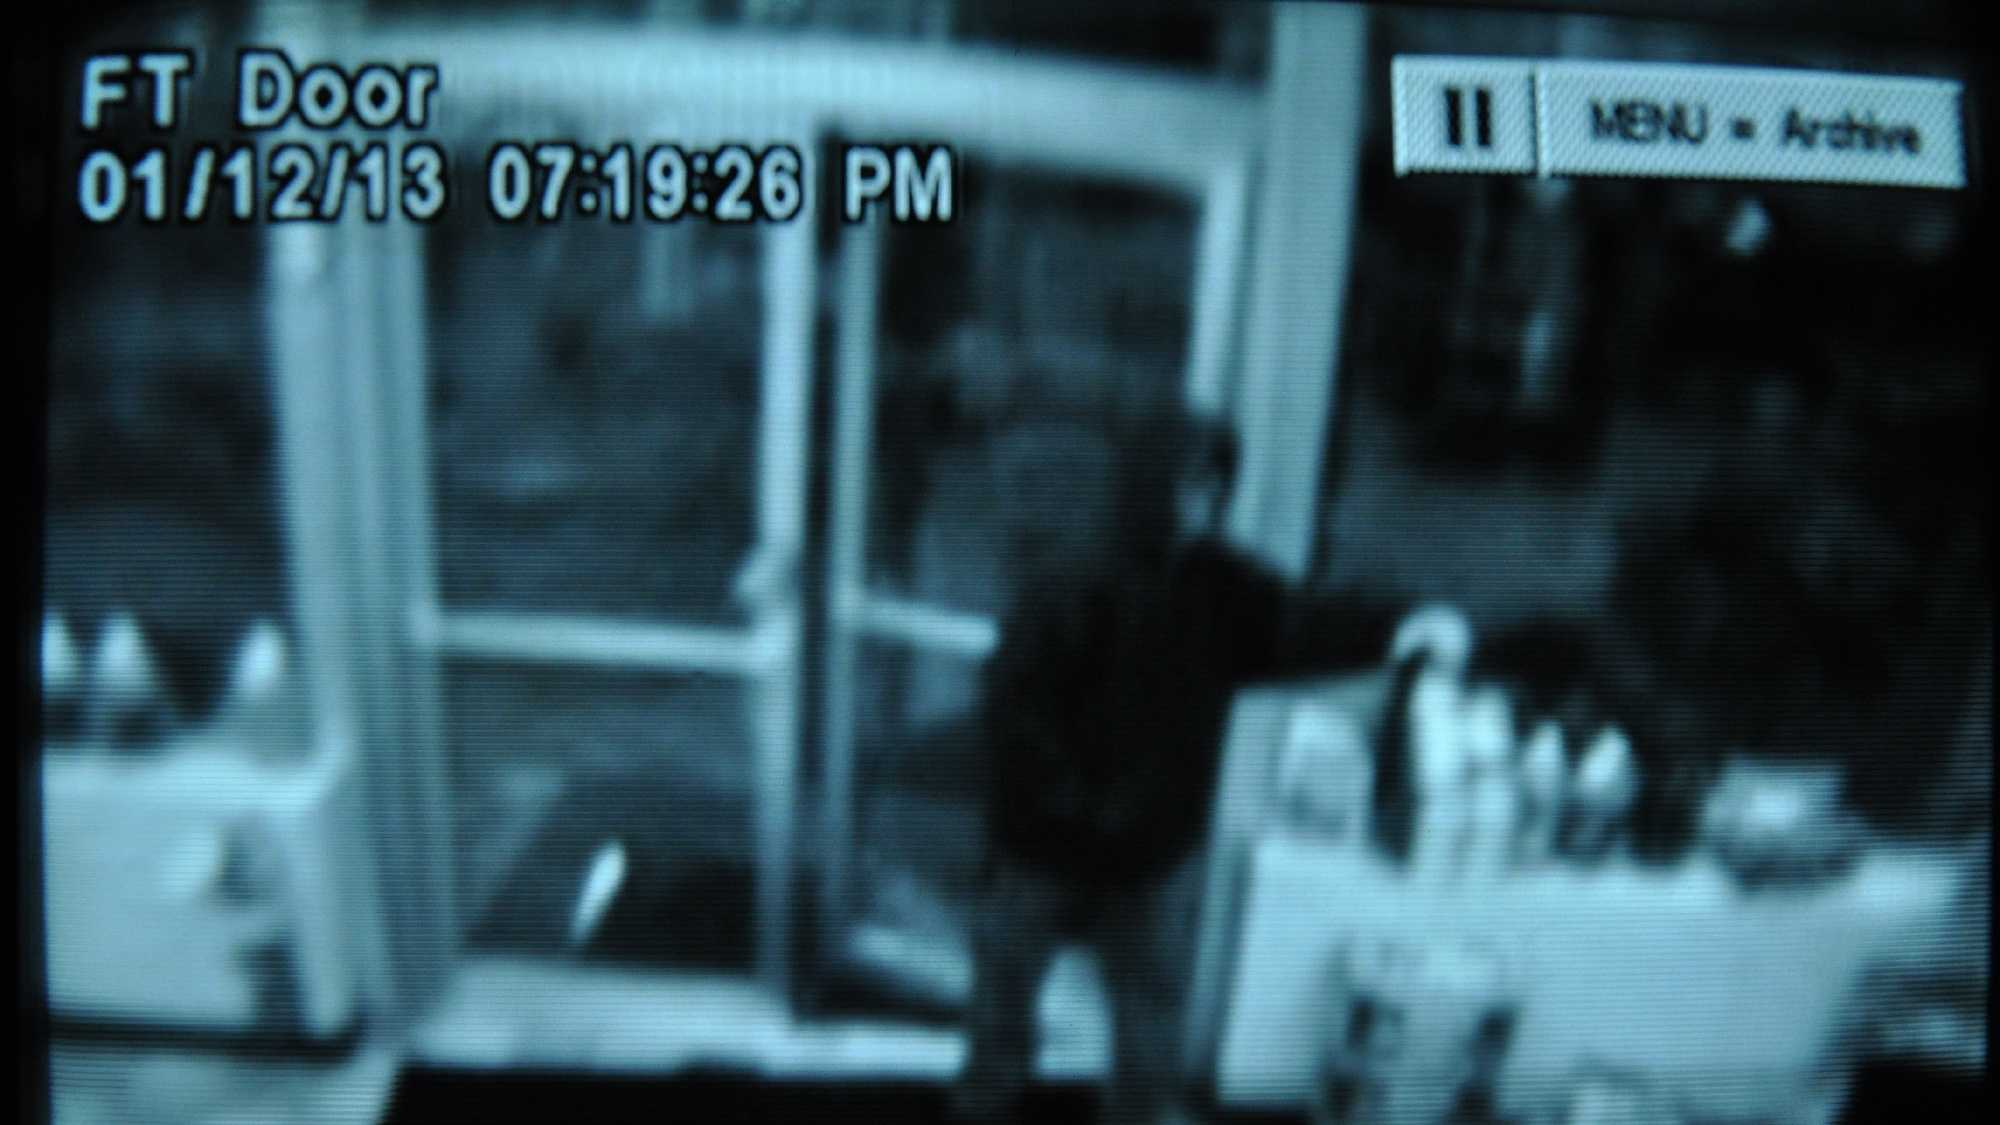 Portsmouth Mobil Robbery